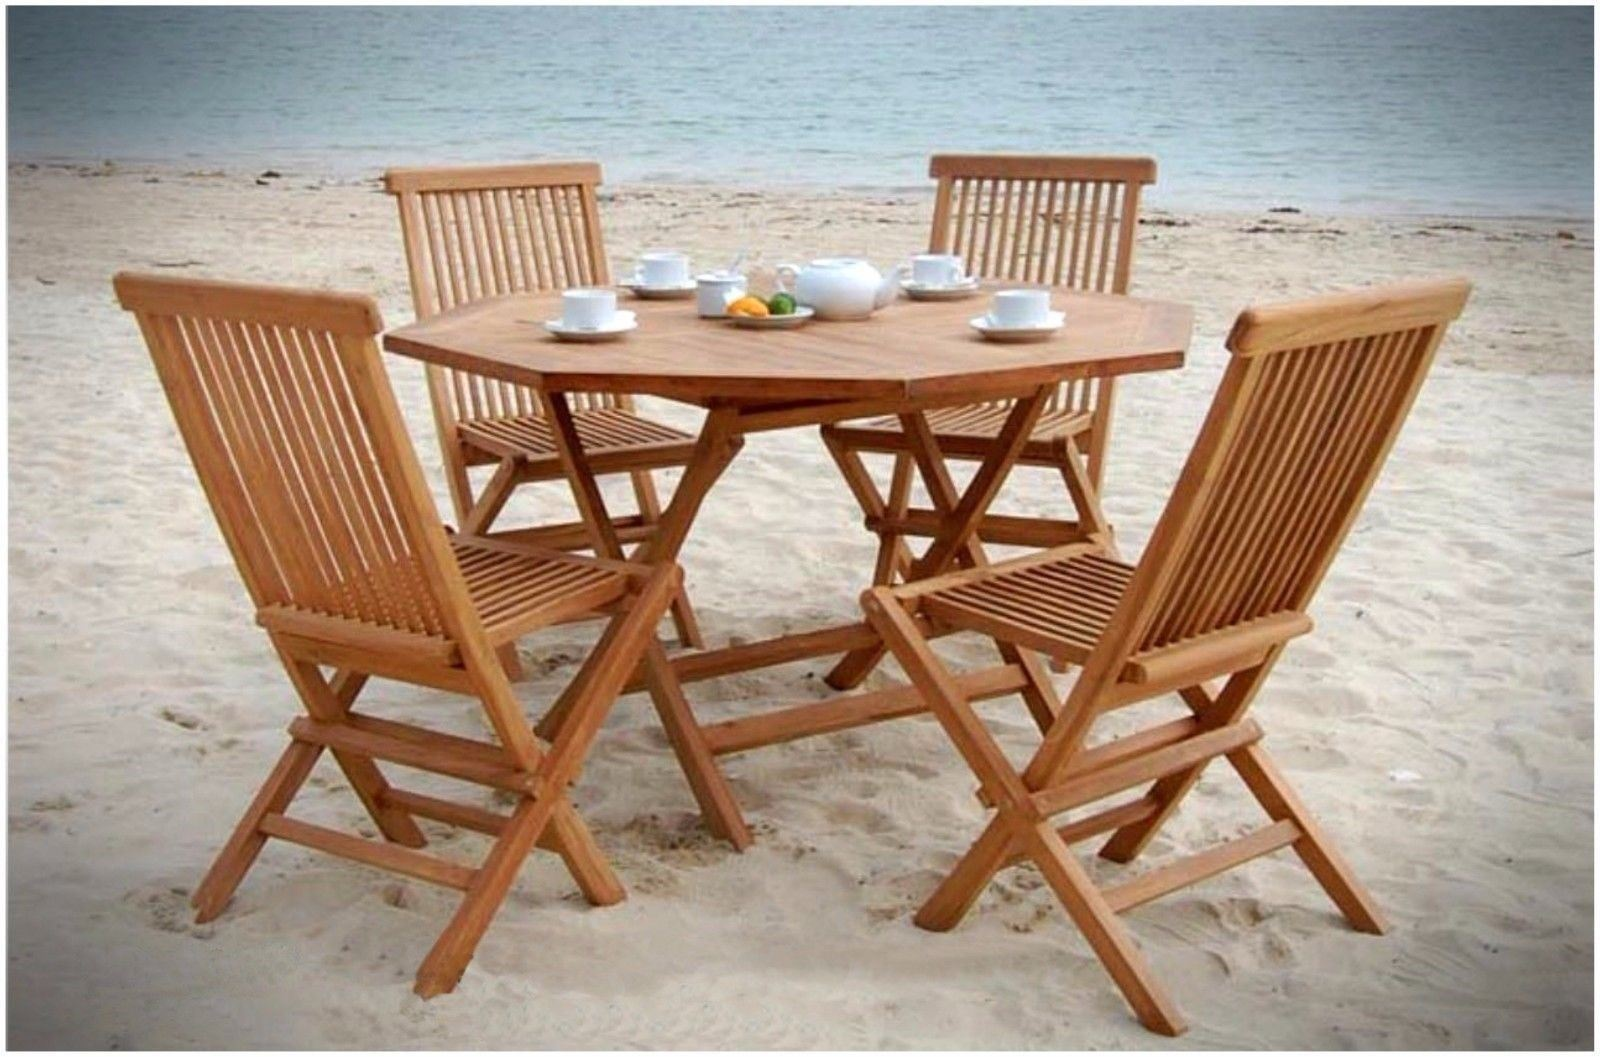 Details about Garden 120cm Solid Teak Wood Folding Table \u0026 4 Chairs Set Wooden Patio Furniture : wooden patio furniture - amorenlinea.org